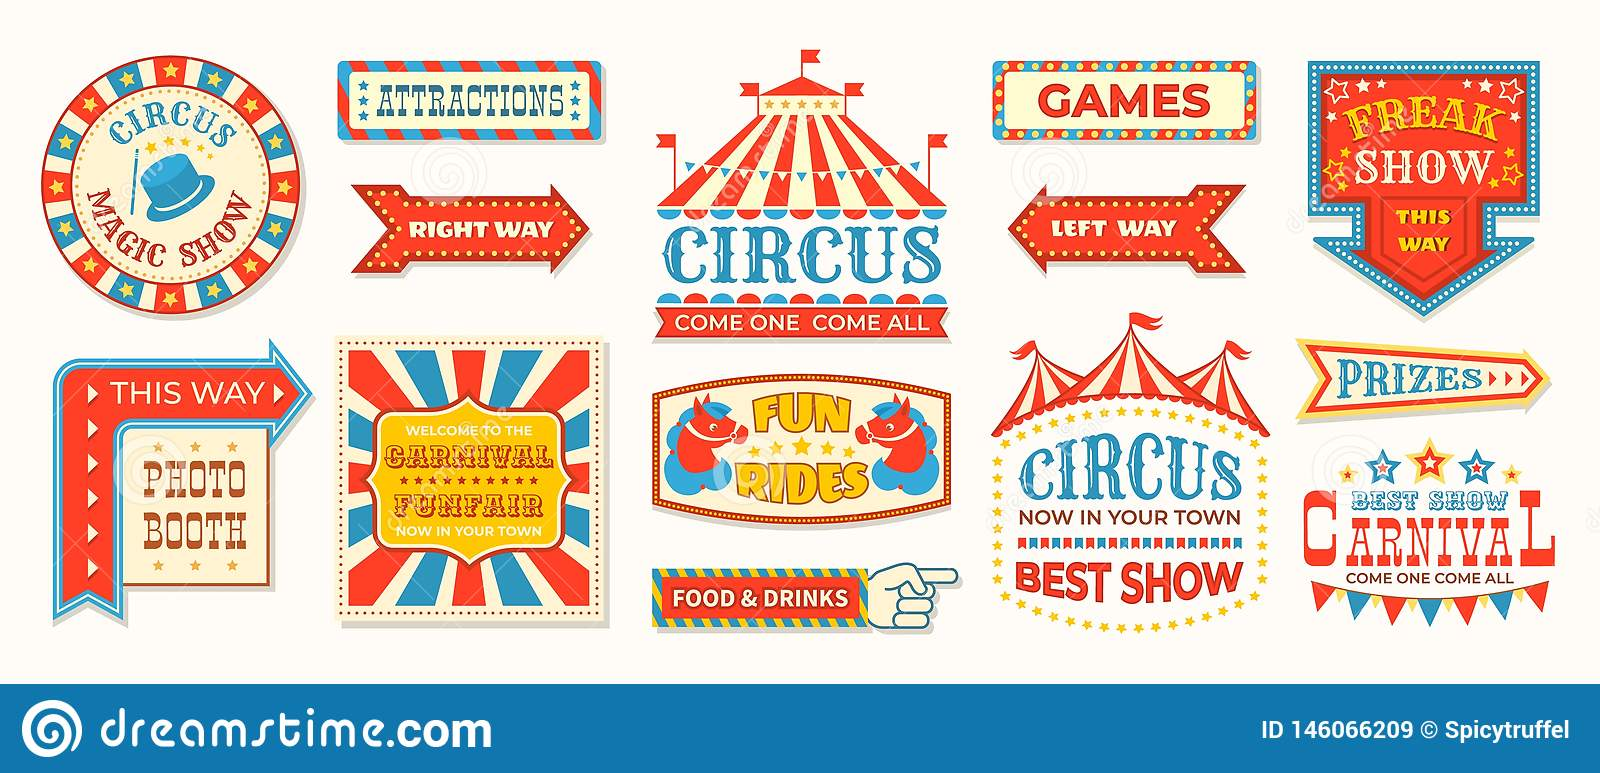 photograph relating to Free Printable Carnival Signs titled Circus Labels. Carnival Retro Banner Signs or symptoms, Classic Magic